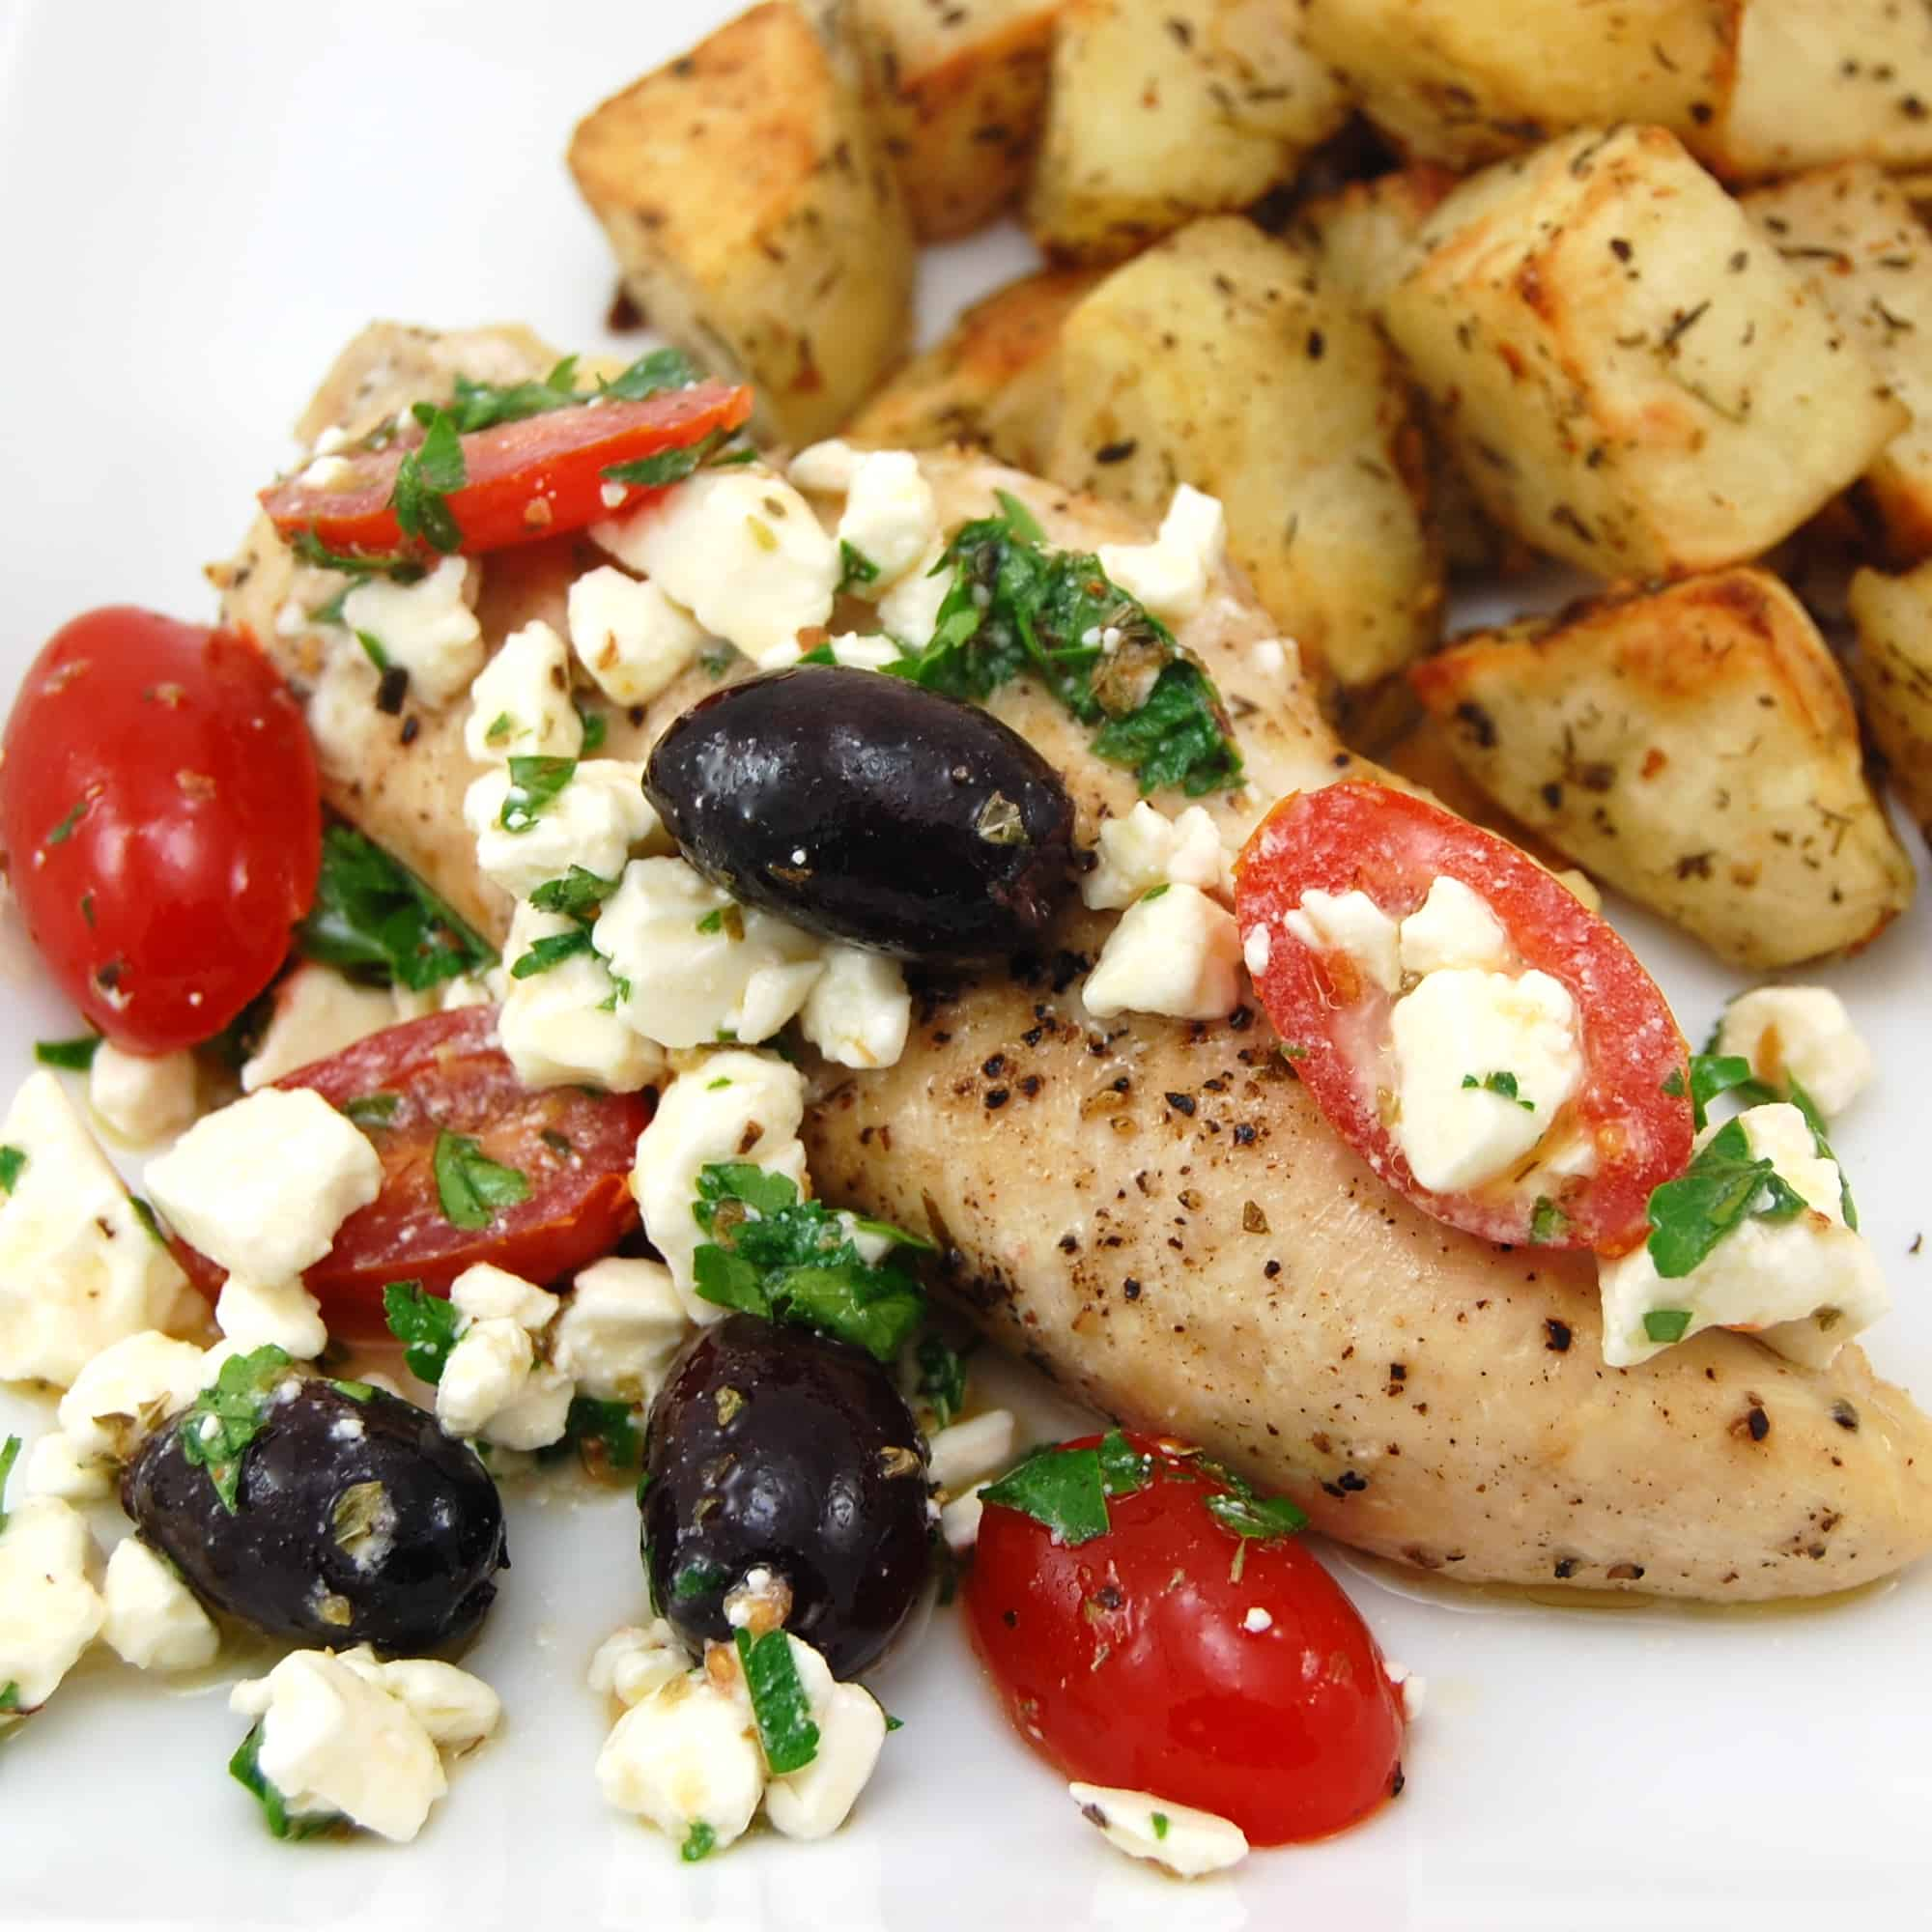 Greek chicken with feta cheese, tomatoes and olives with potatoes